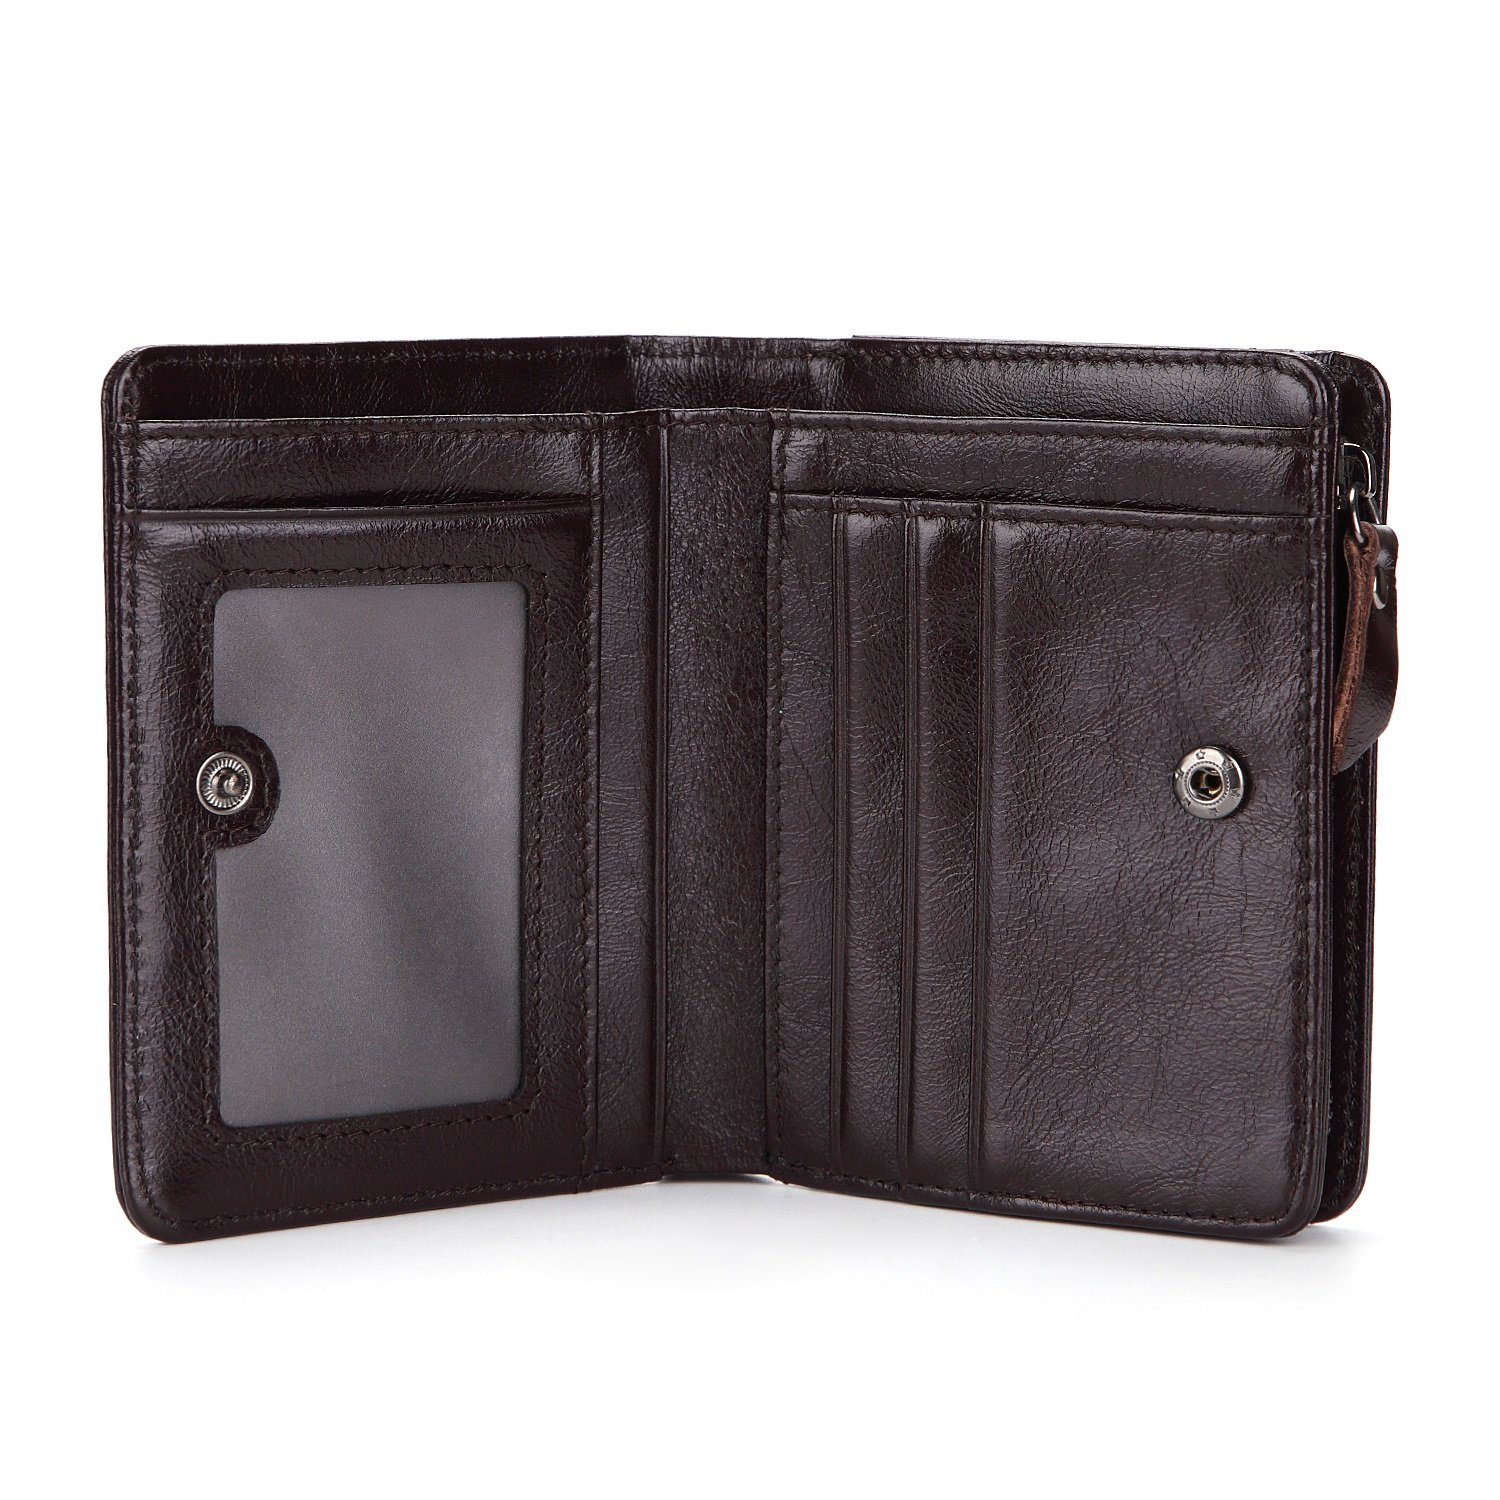 XINXI-MAO Cozy RFID Mens Wallet Leather Vertical Wallet Cowhide Leather Anti-Theft Brush Zip Coin Purse Backpack Color : Brown, Size : S